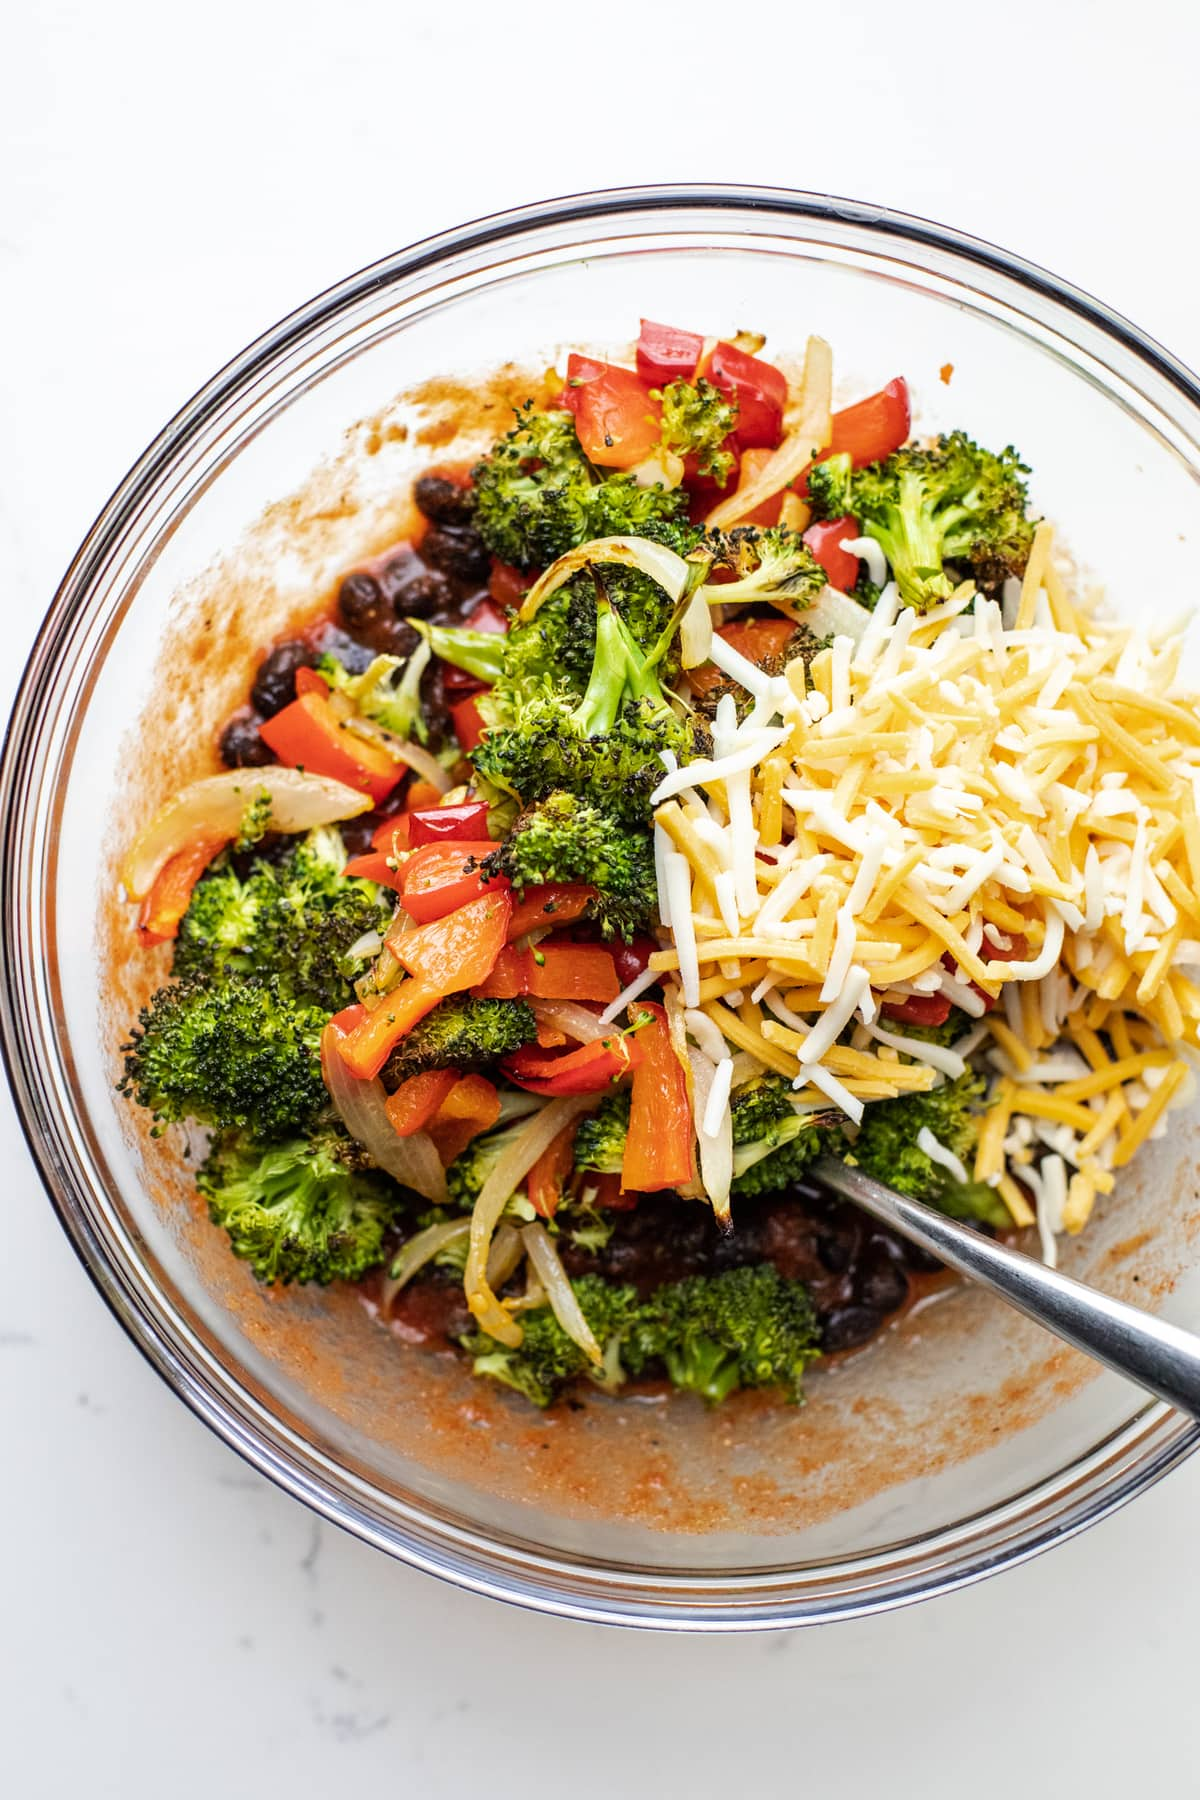 A bowl of vegetable filling for enchiladas in a glass bowl.